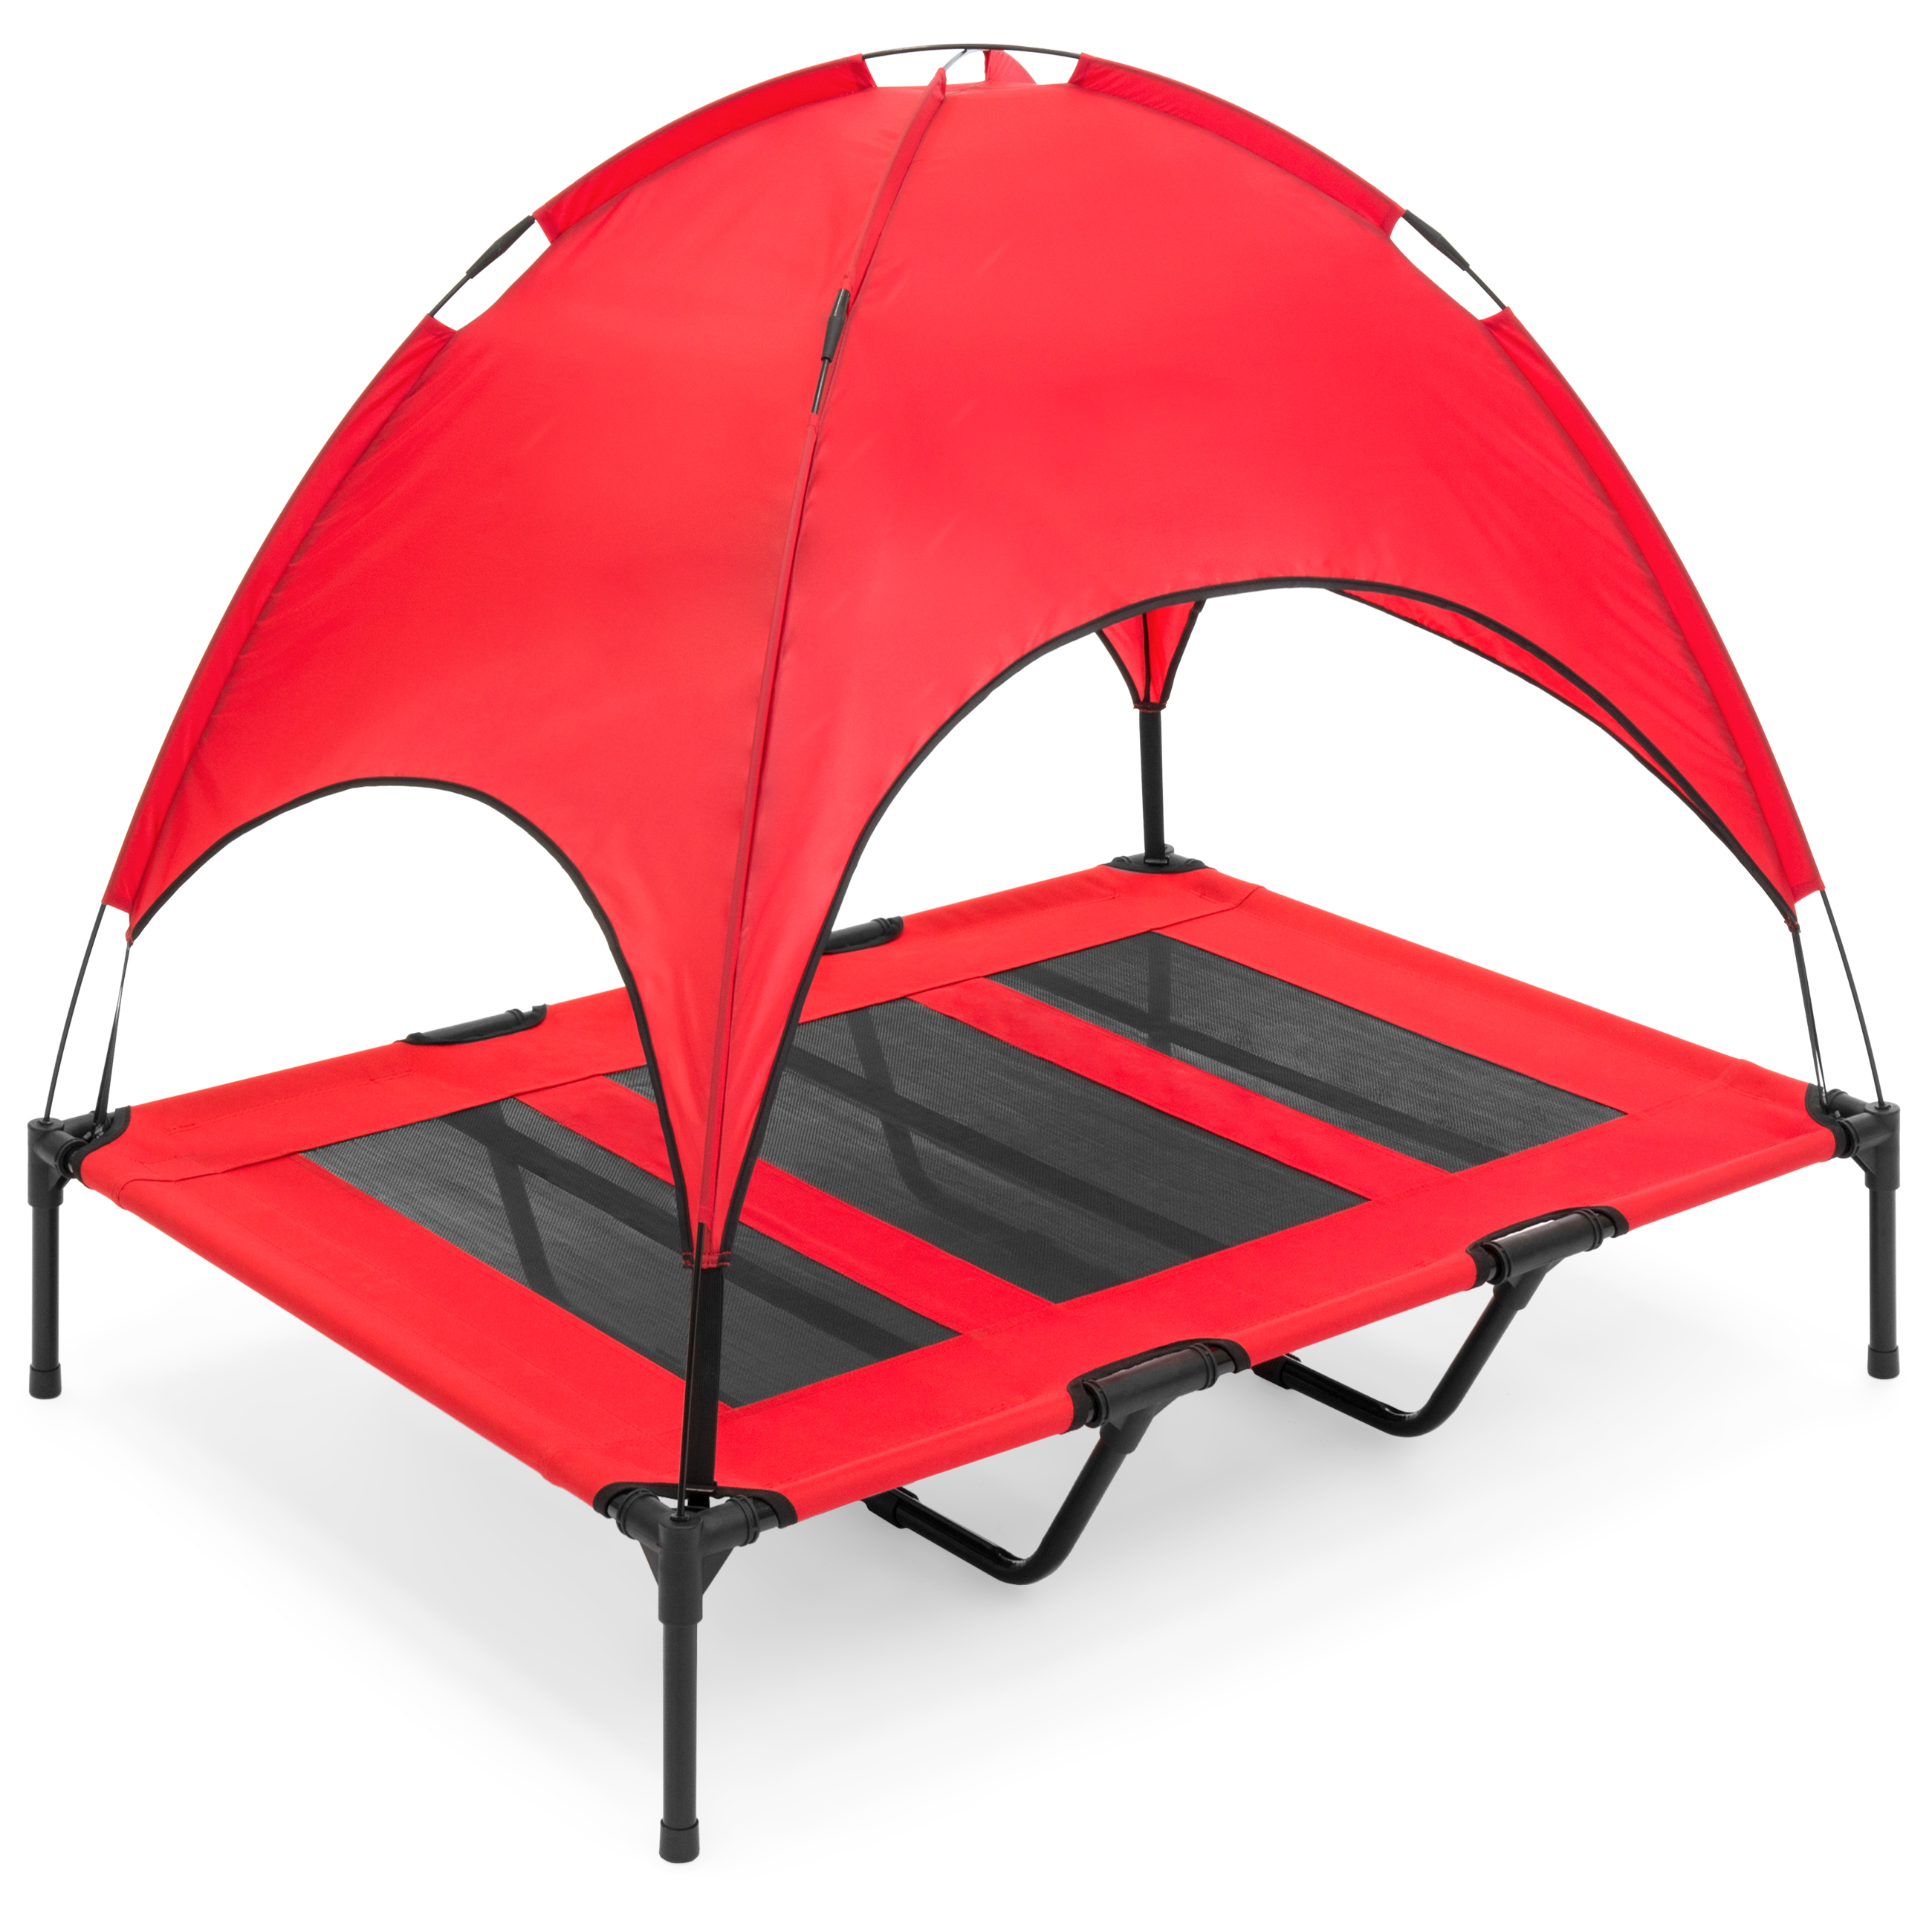 "Best Choice Products 48"" Raised Mesh Cot Cooling Dog Bed w/ Removable Canopy Tent, Large, Red"